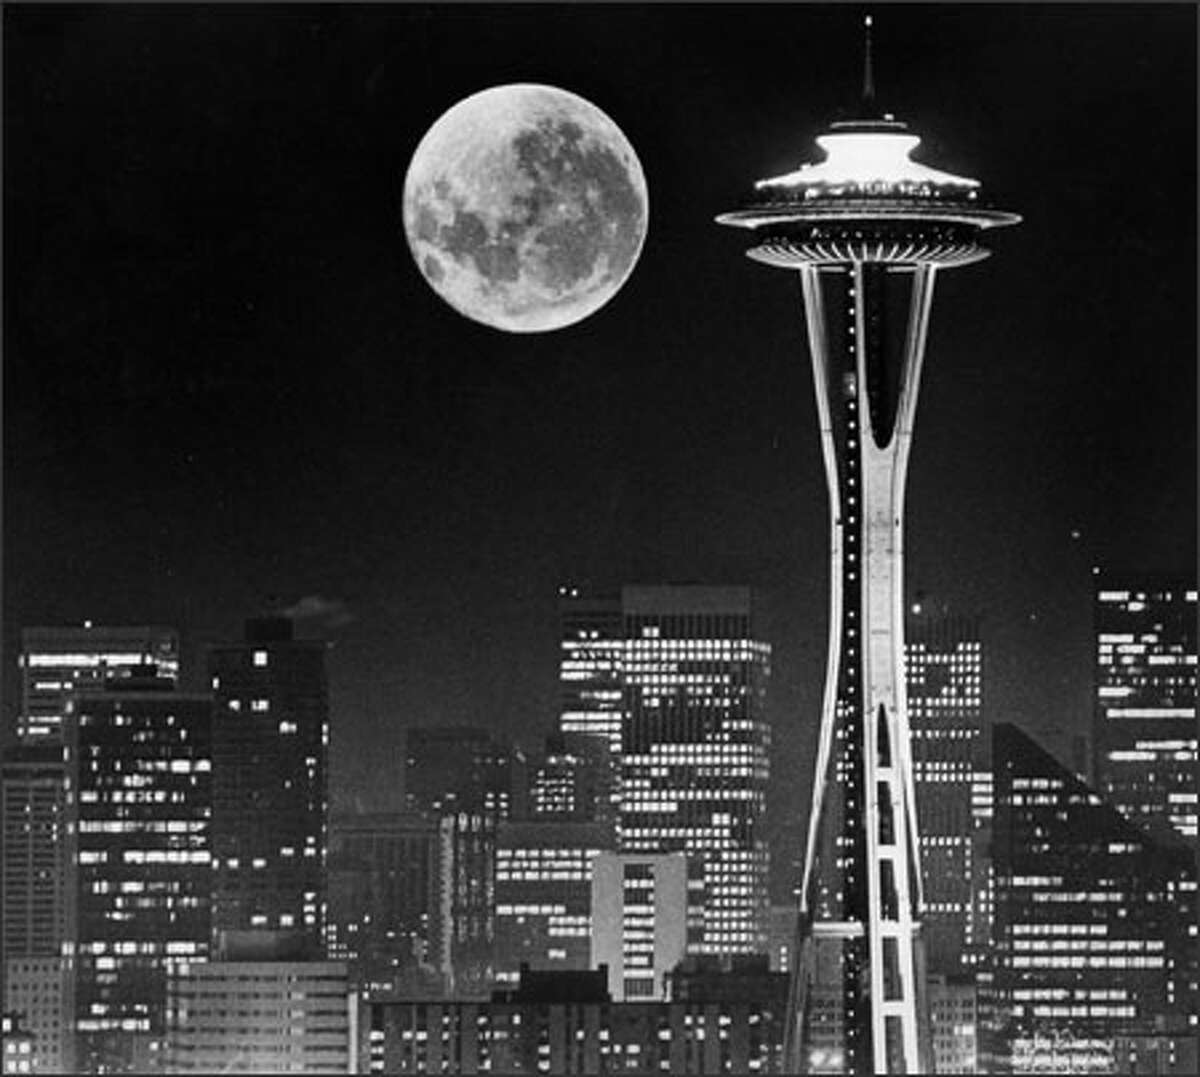 A full moon appears to hover next to the Space Needle in this composite photograph.